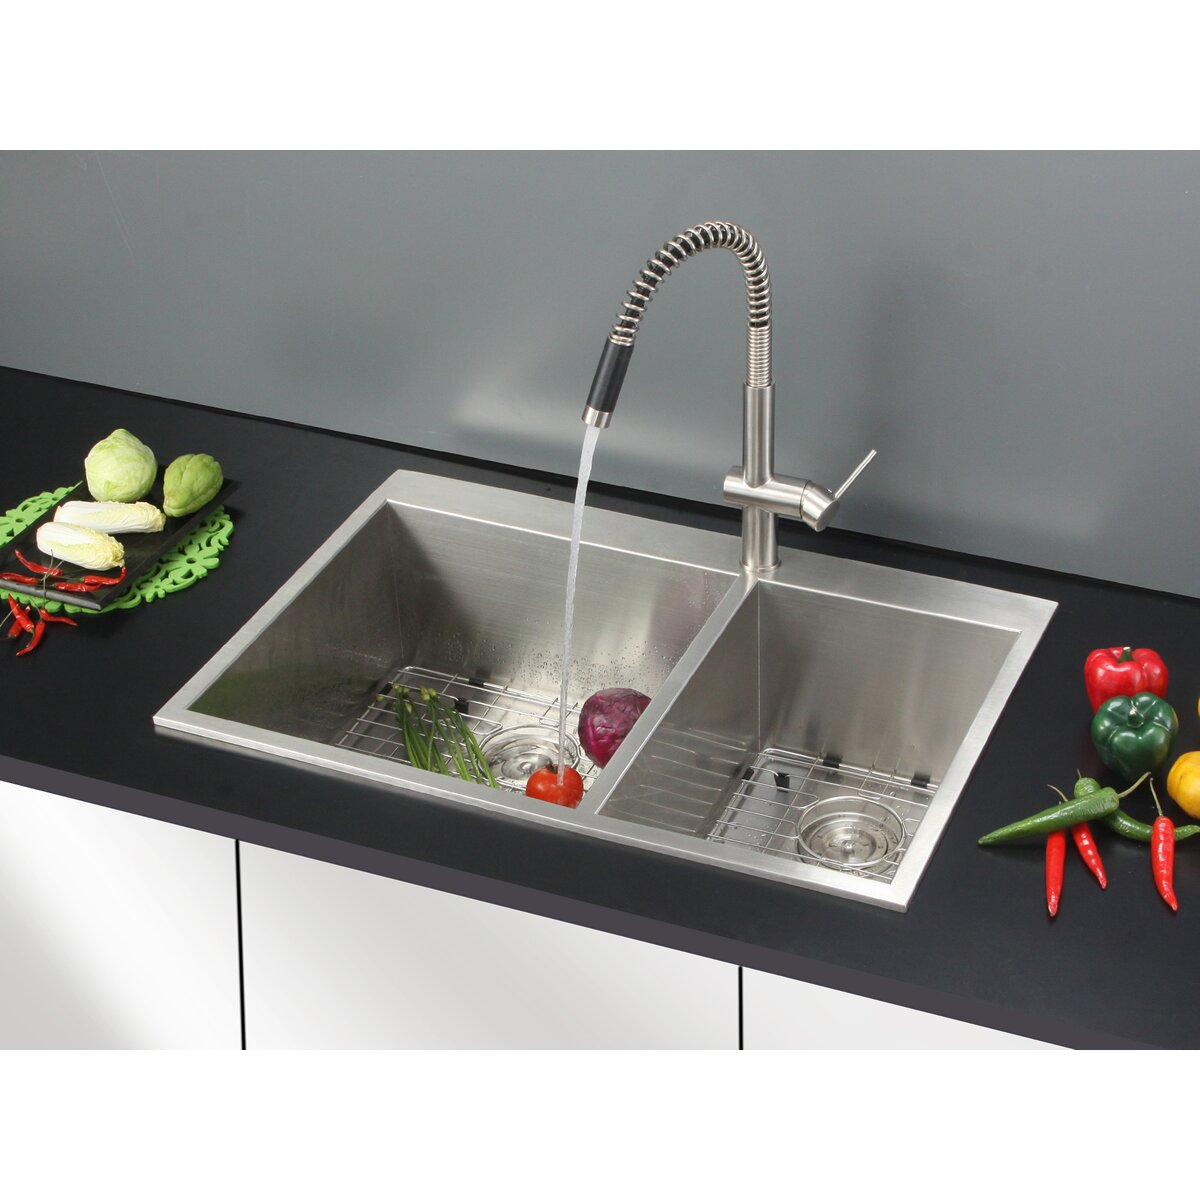 Ruvati Tirana 33 Quot X 22 Quot Drop In Double Bowl Kitchen Sink